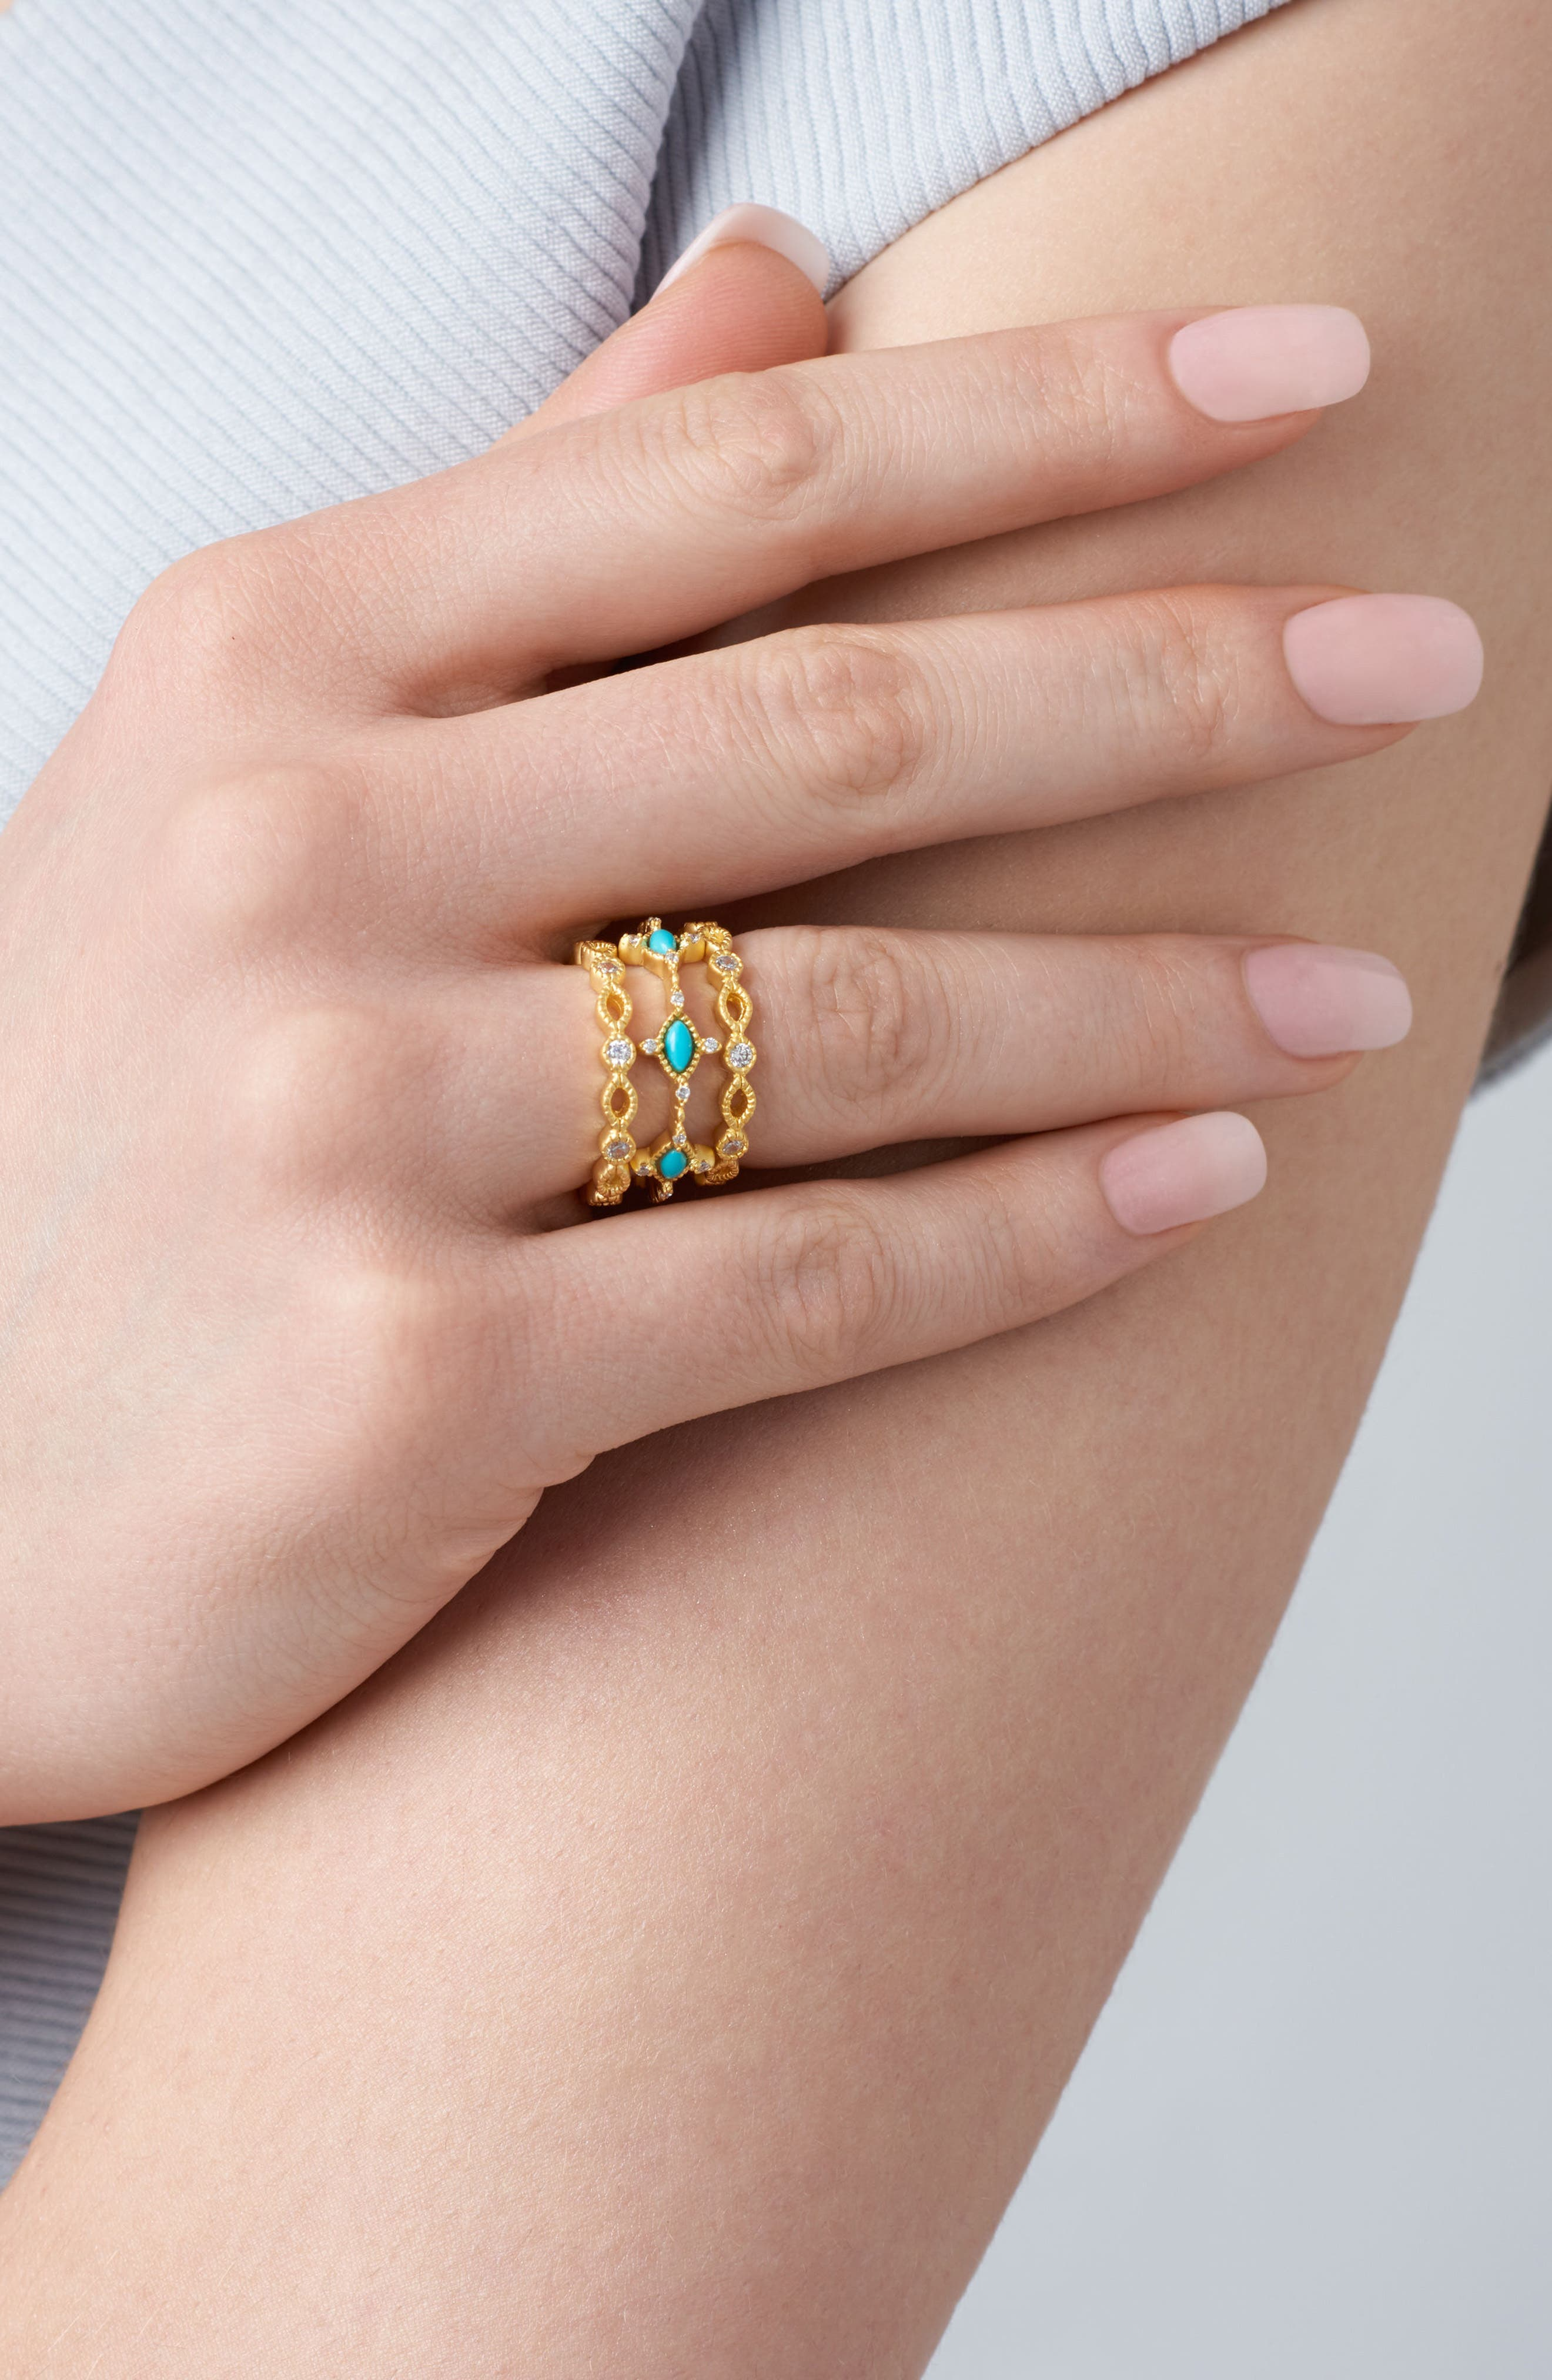 Amazonian Allure Set of 3 Band Rings,                             Alternate thumbnail 2, color,                             Turquoise